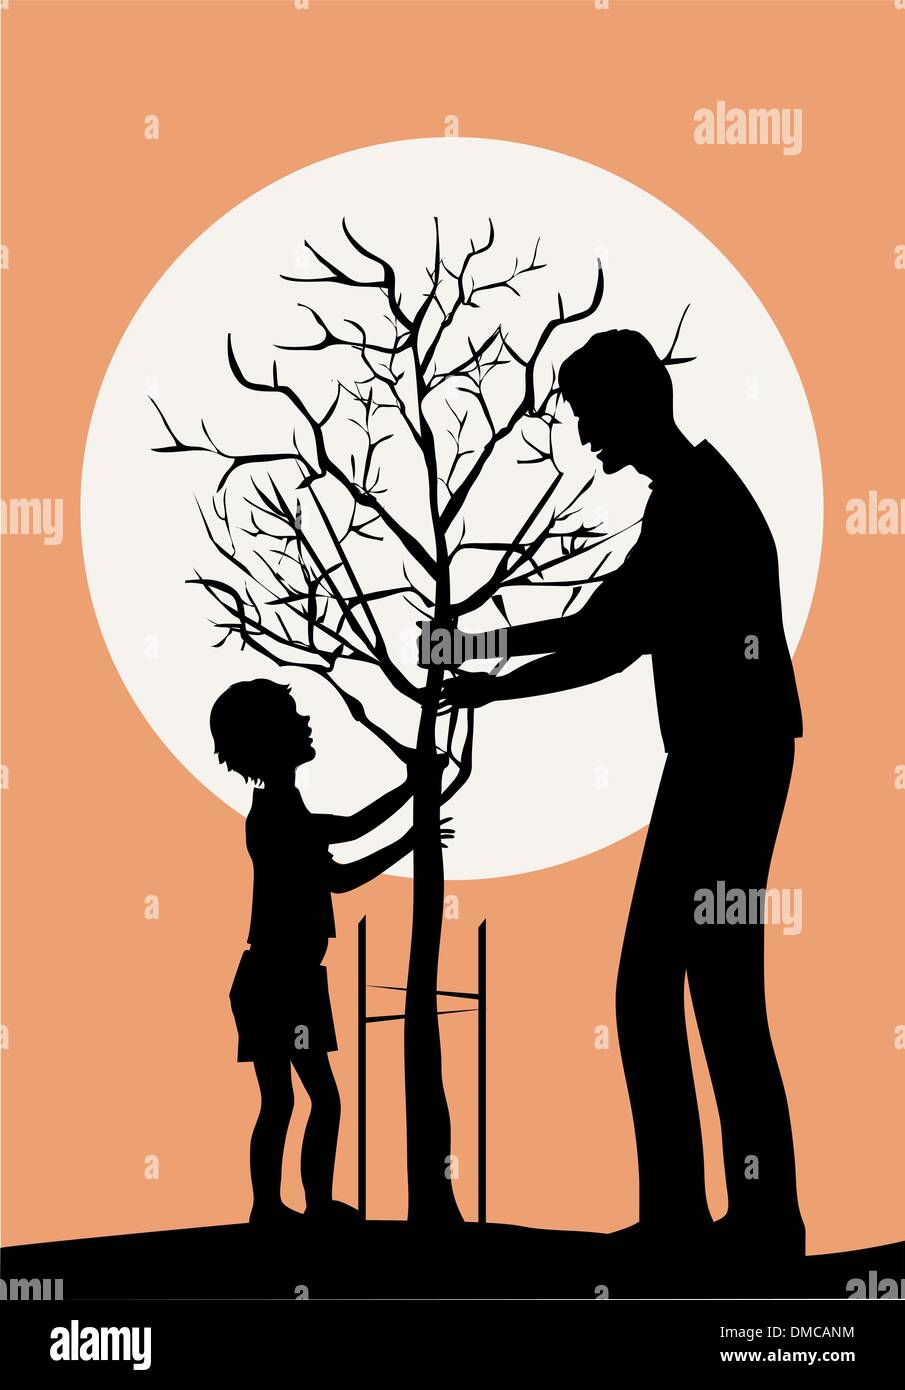 Planting tree - Stock Image